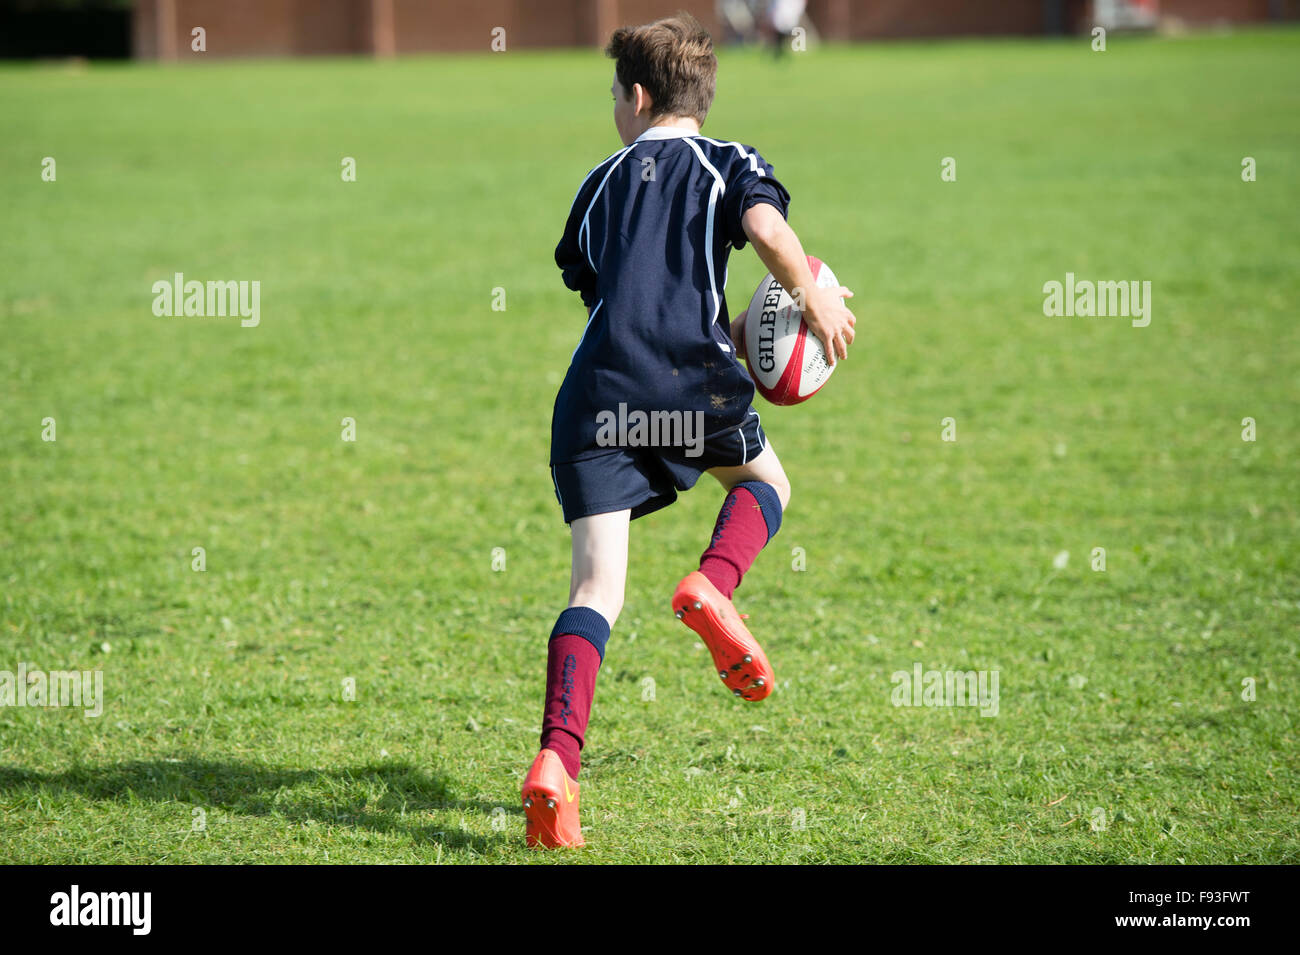 Secondary education Wales UK: physical education lesson - a teenage boy playing rugby on a school games pitch field. - Stock Image